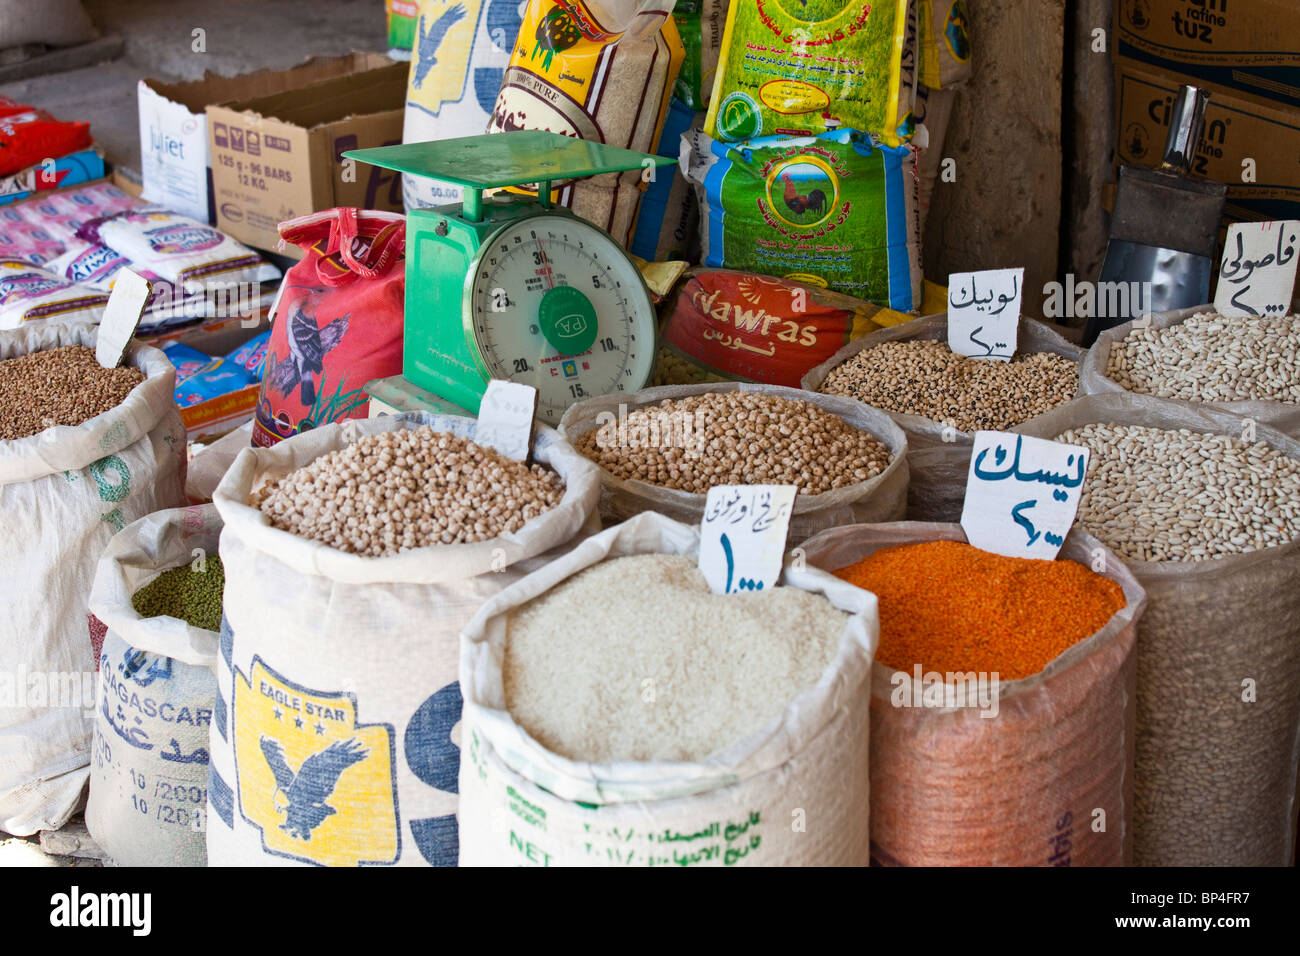 Bulk goods shop in the bazaar, Dohuk, Kurdistan, Iraq - Stock Image